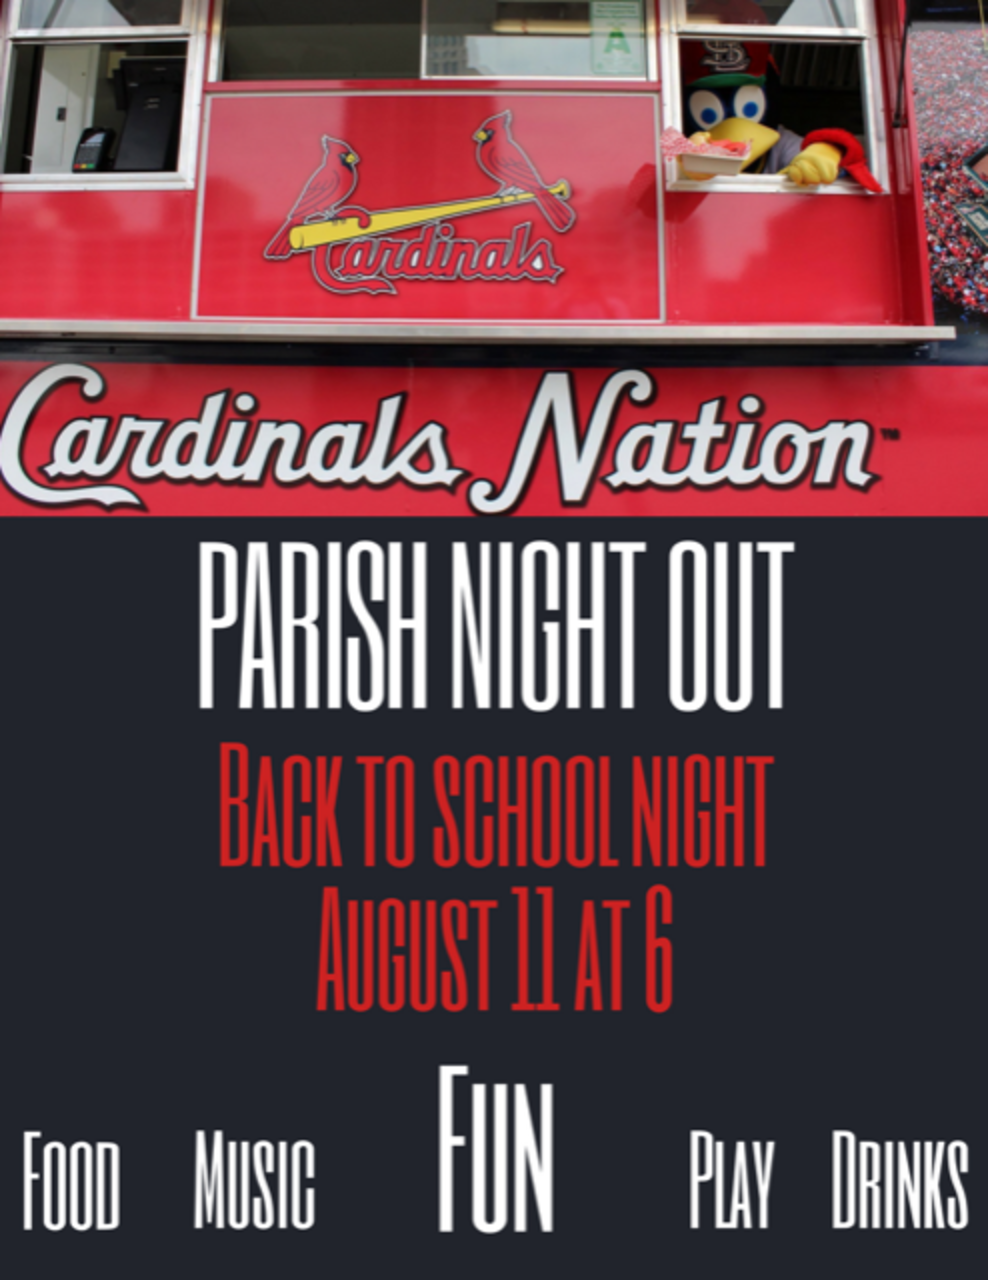 Parish Night Out August